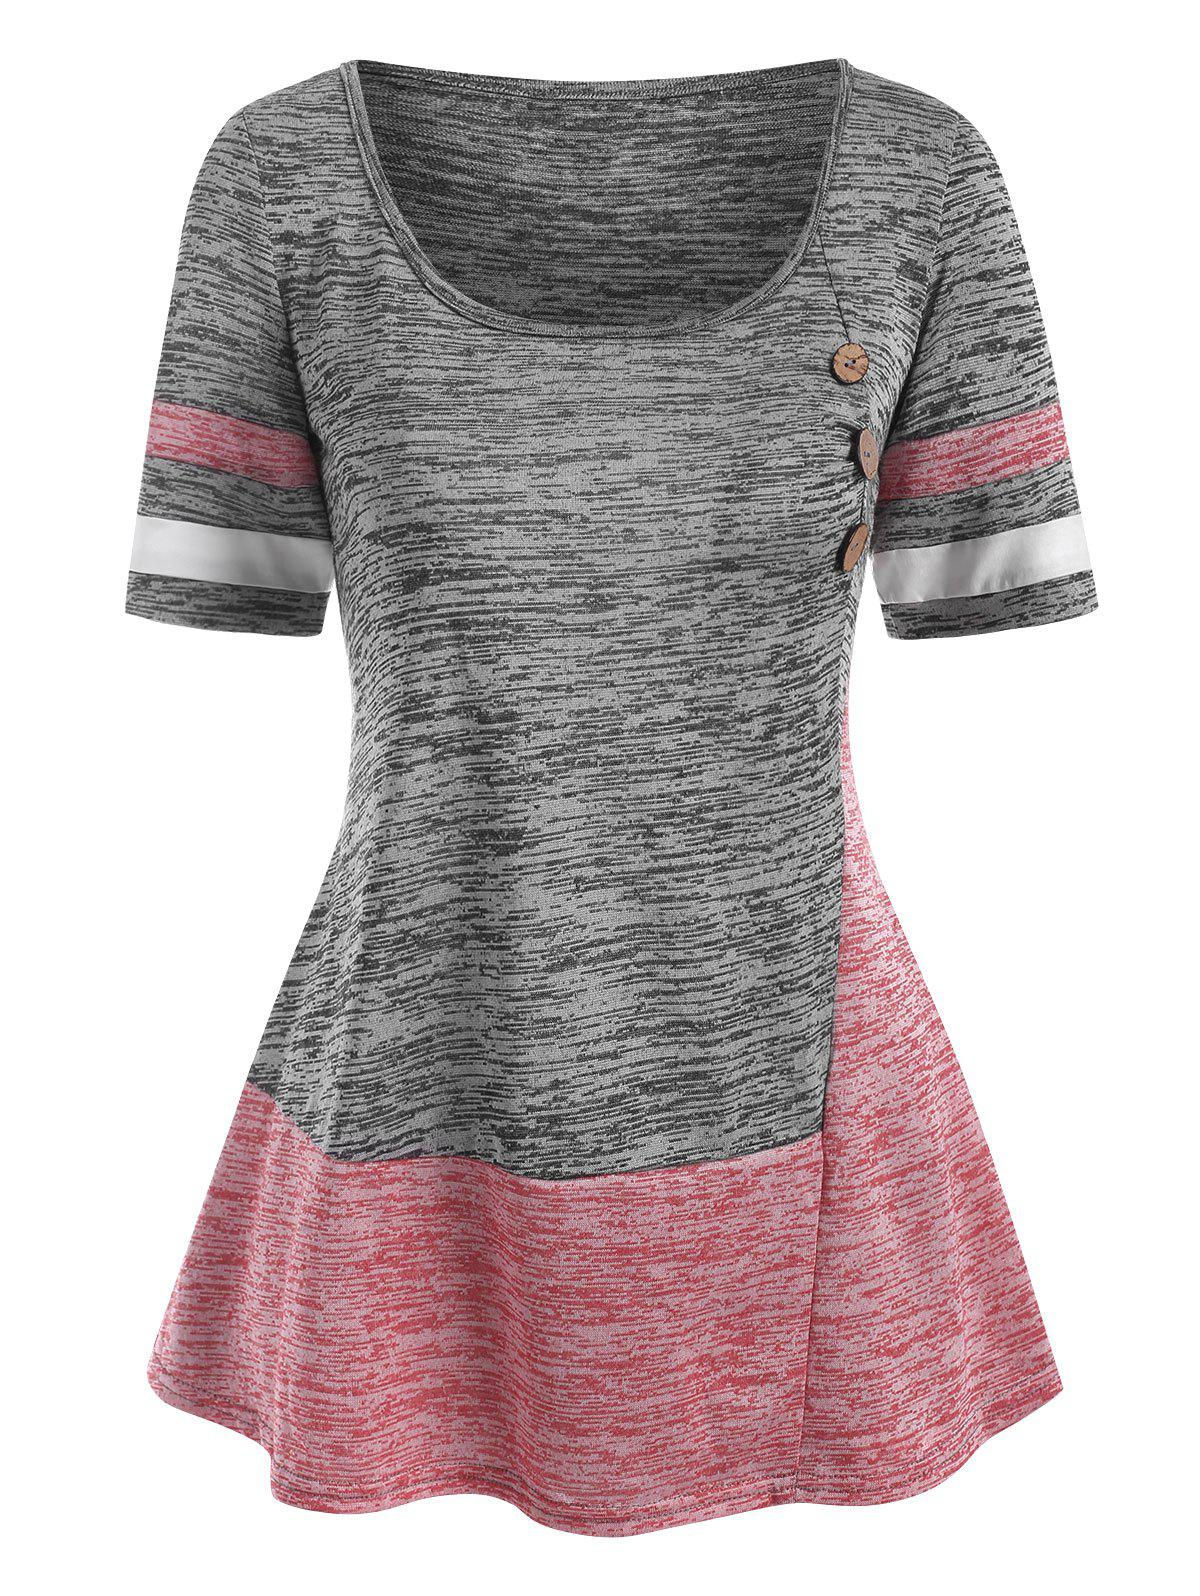 Mock Button Colorblock Striped T Shirt - GRAY M